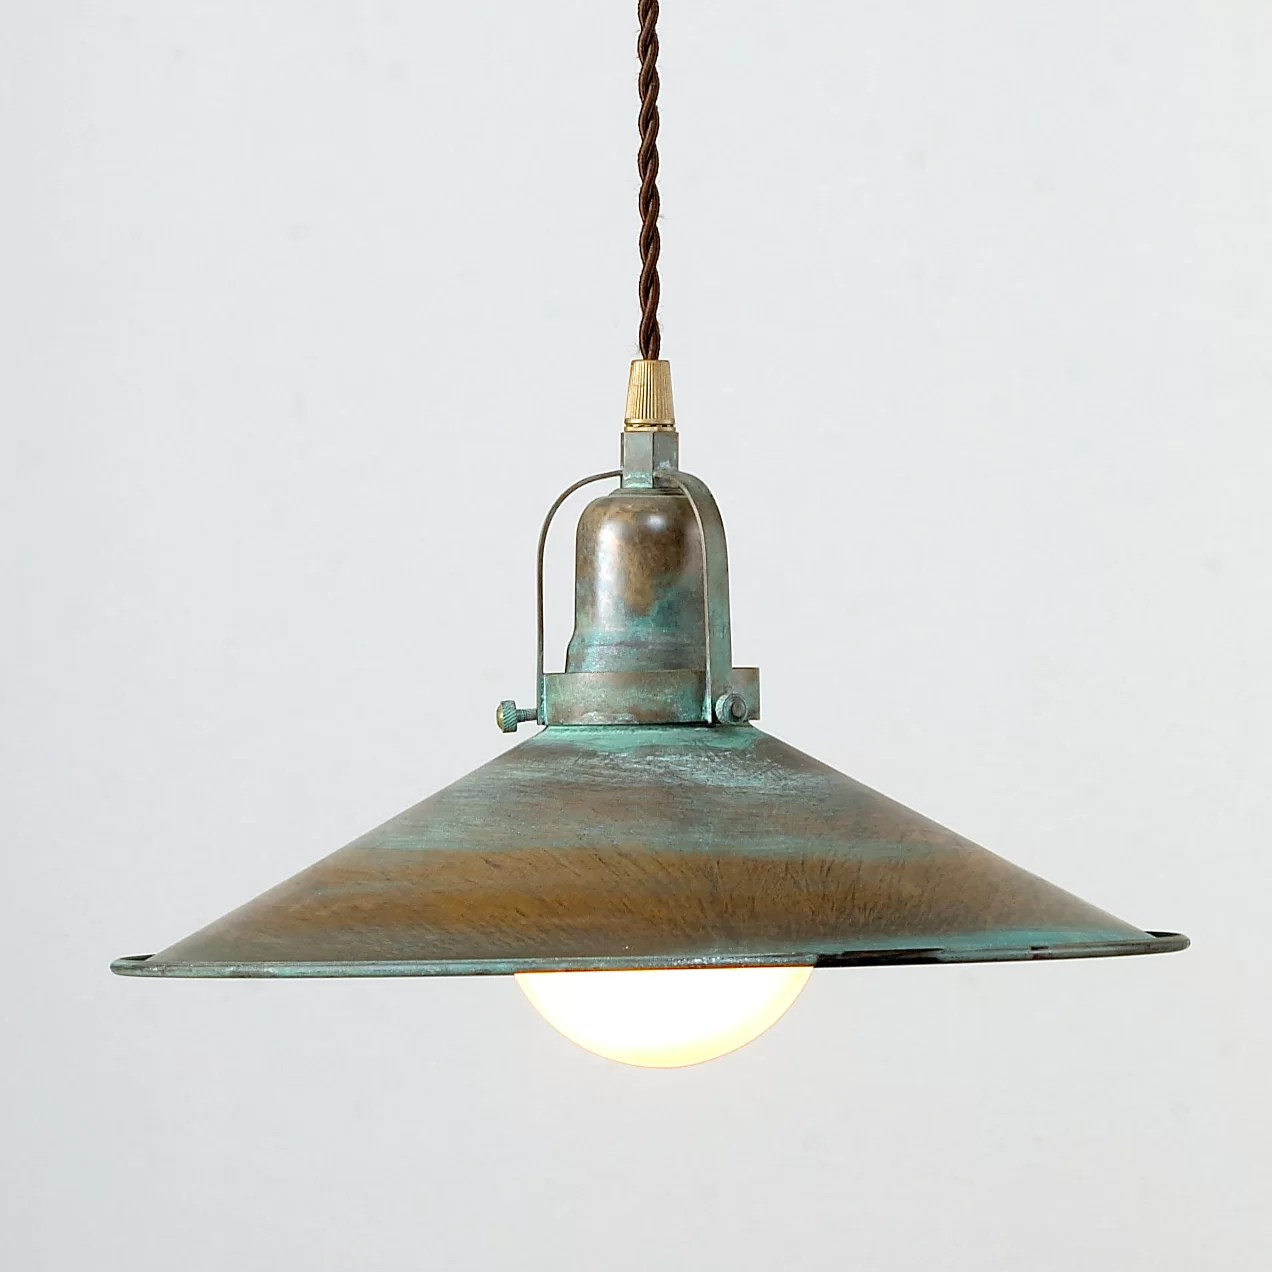 Pendant Lighting Lustrarte Lighting Rustic D 39 39avo 1 Light Large Pendant